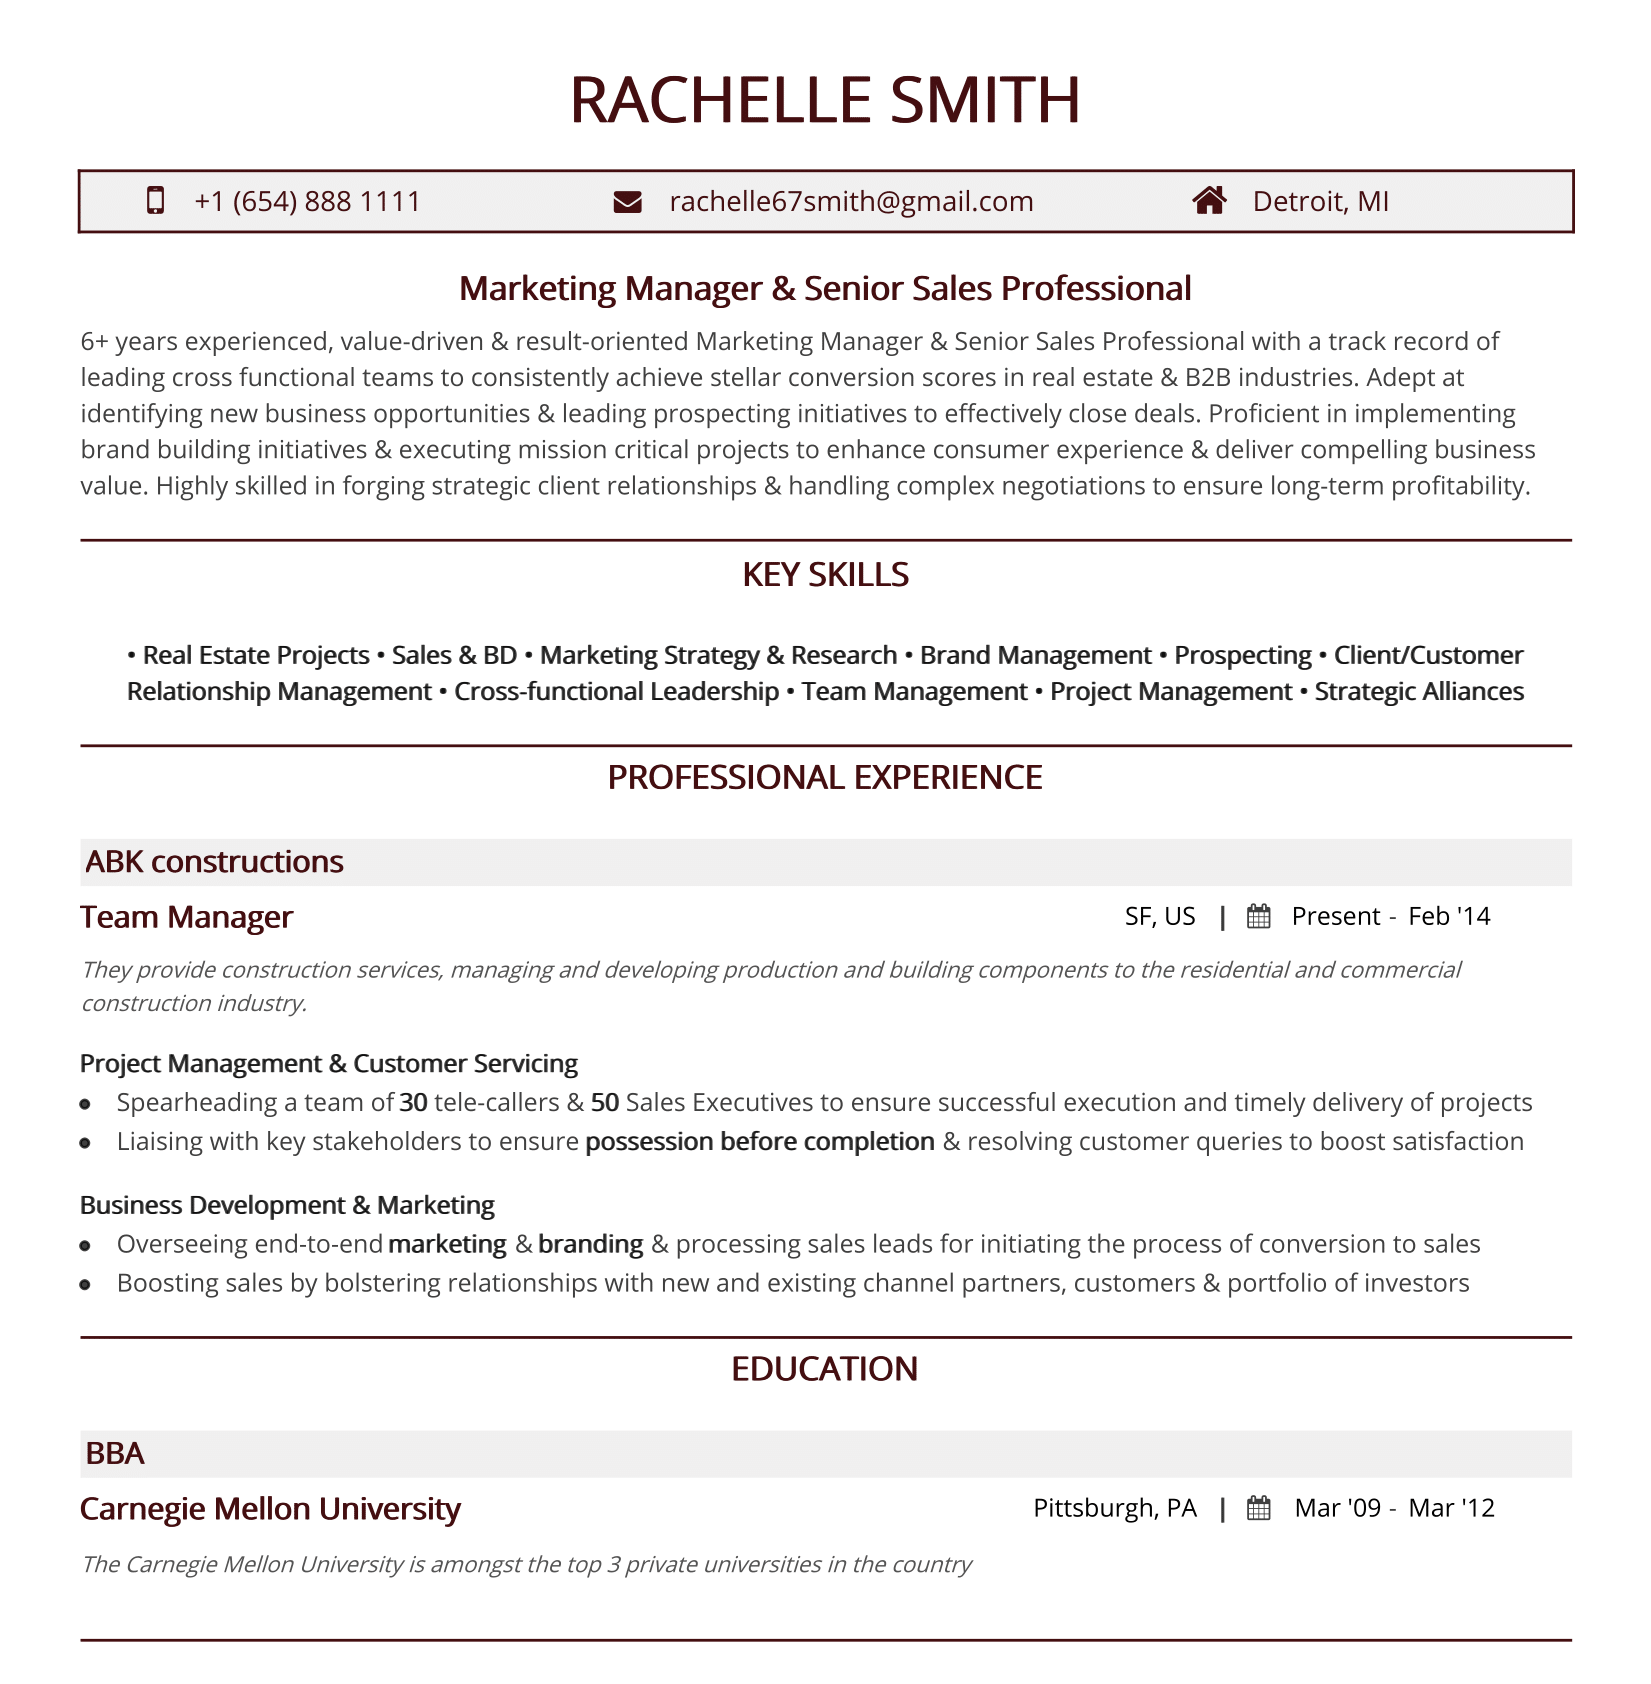 RACHELLE_SMITH_Supply_Chain-Manager--2--1